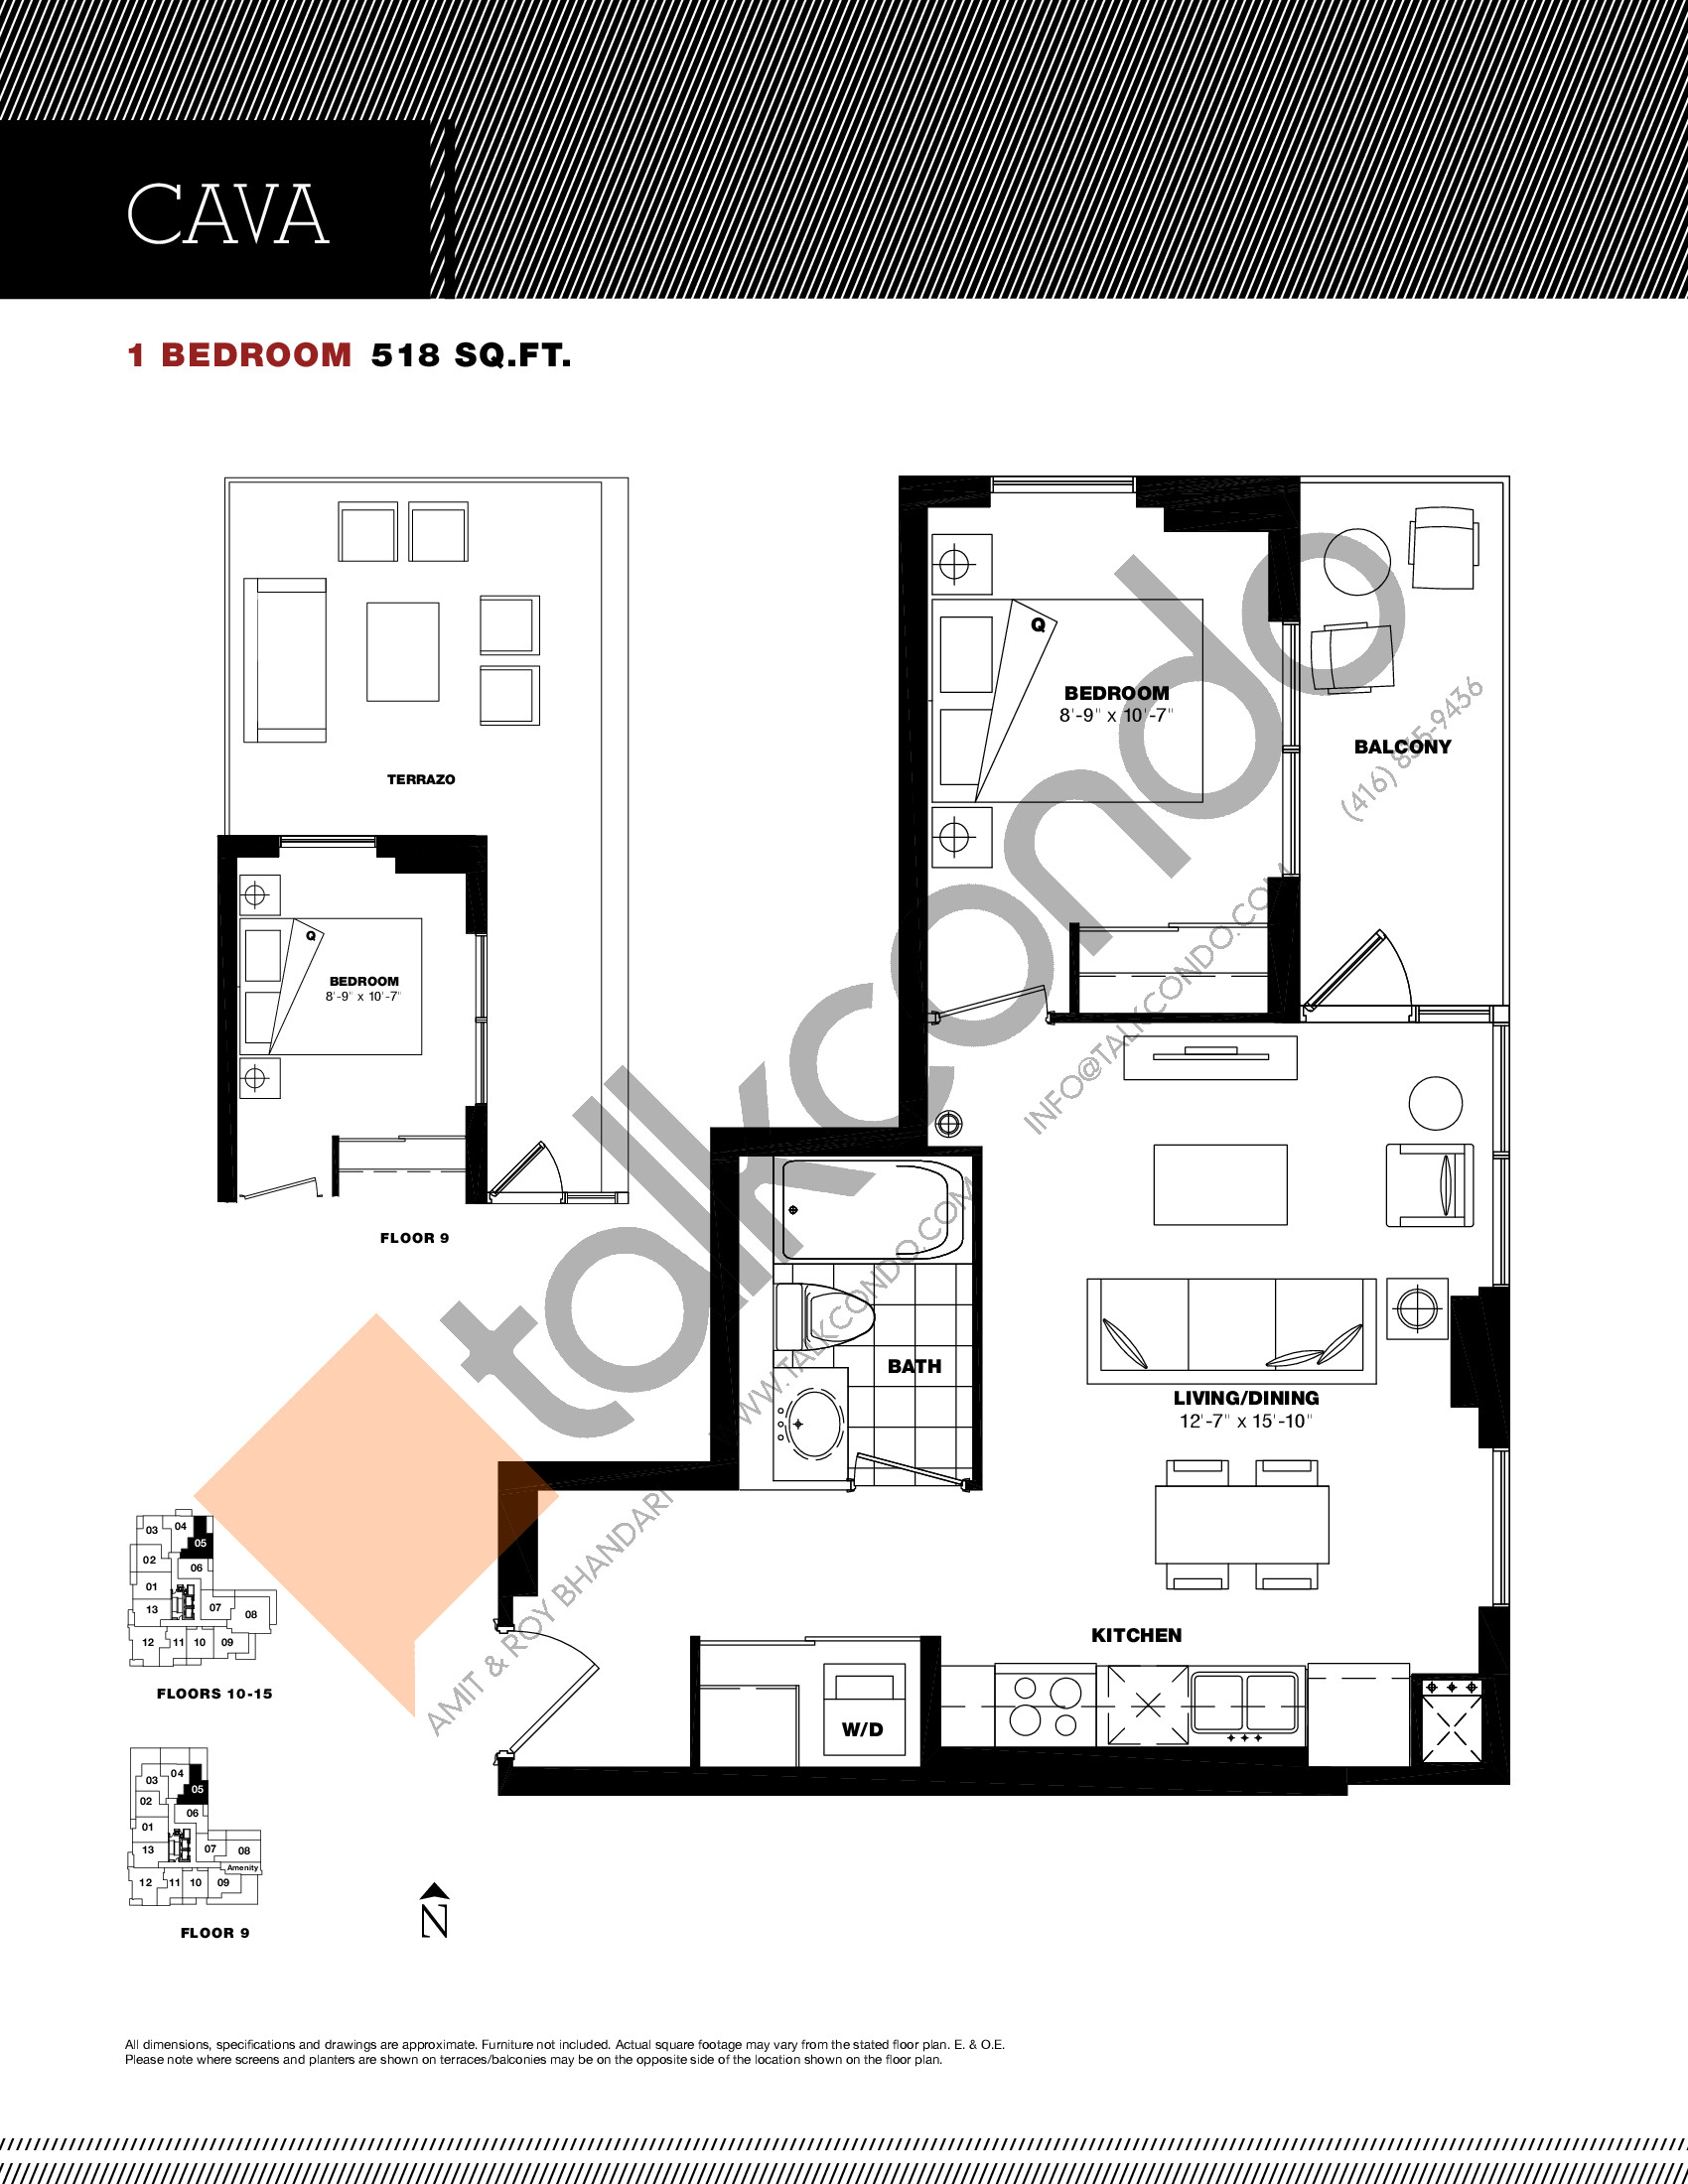 Cava Floor Plan at Residenze Palazzo at Treviso 3 Condos - 518 sq.ft